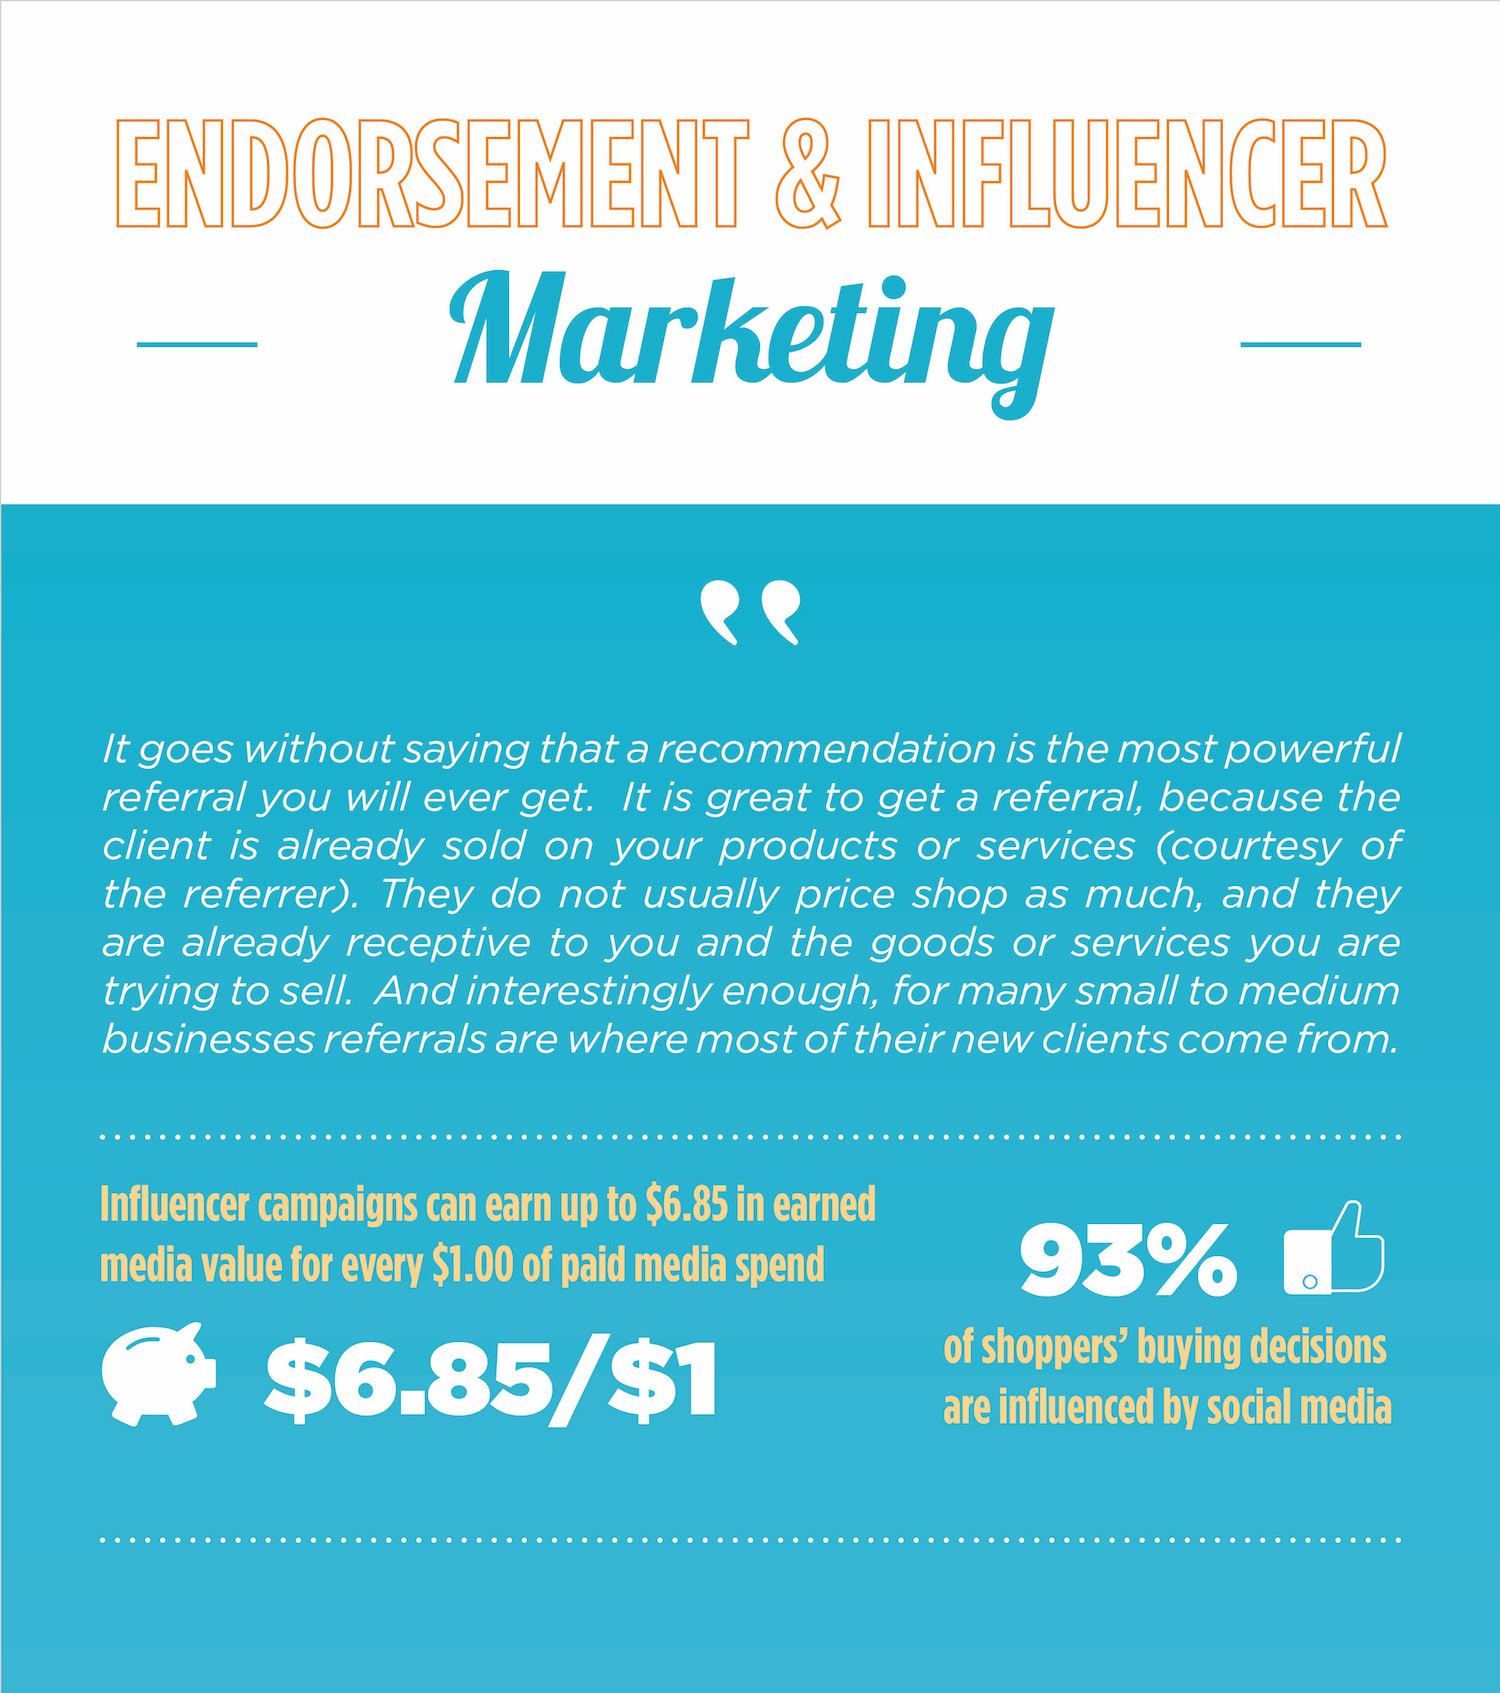 endorsement-&-influencer-marketing-infographic